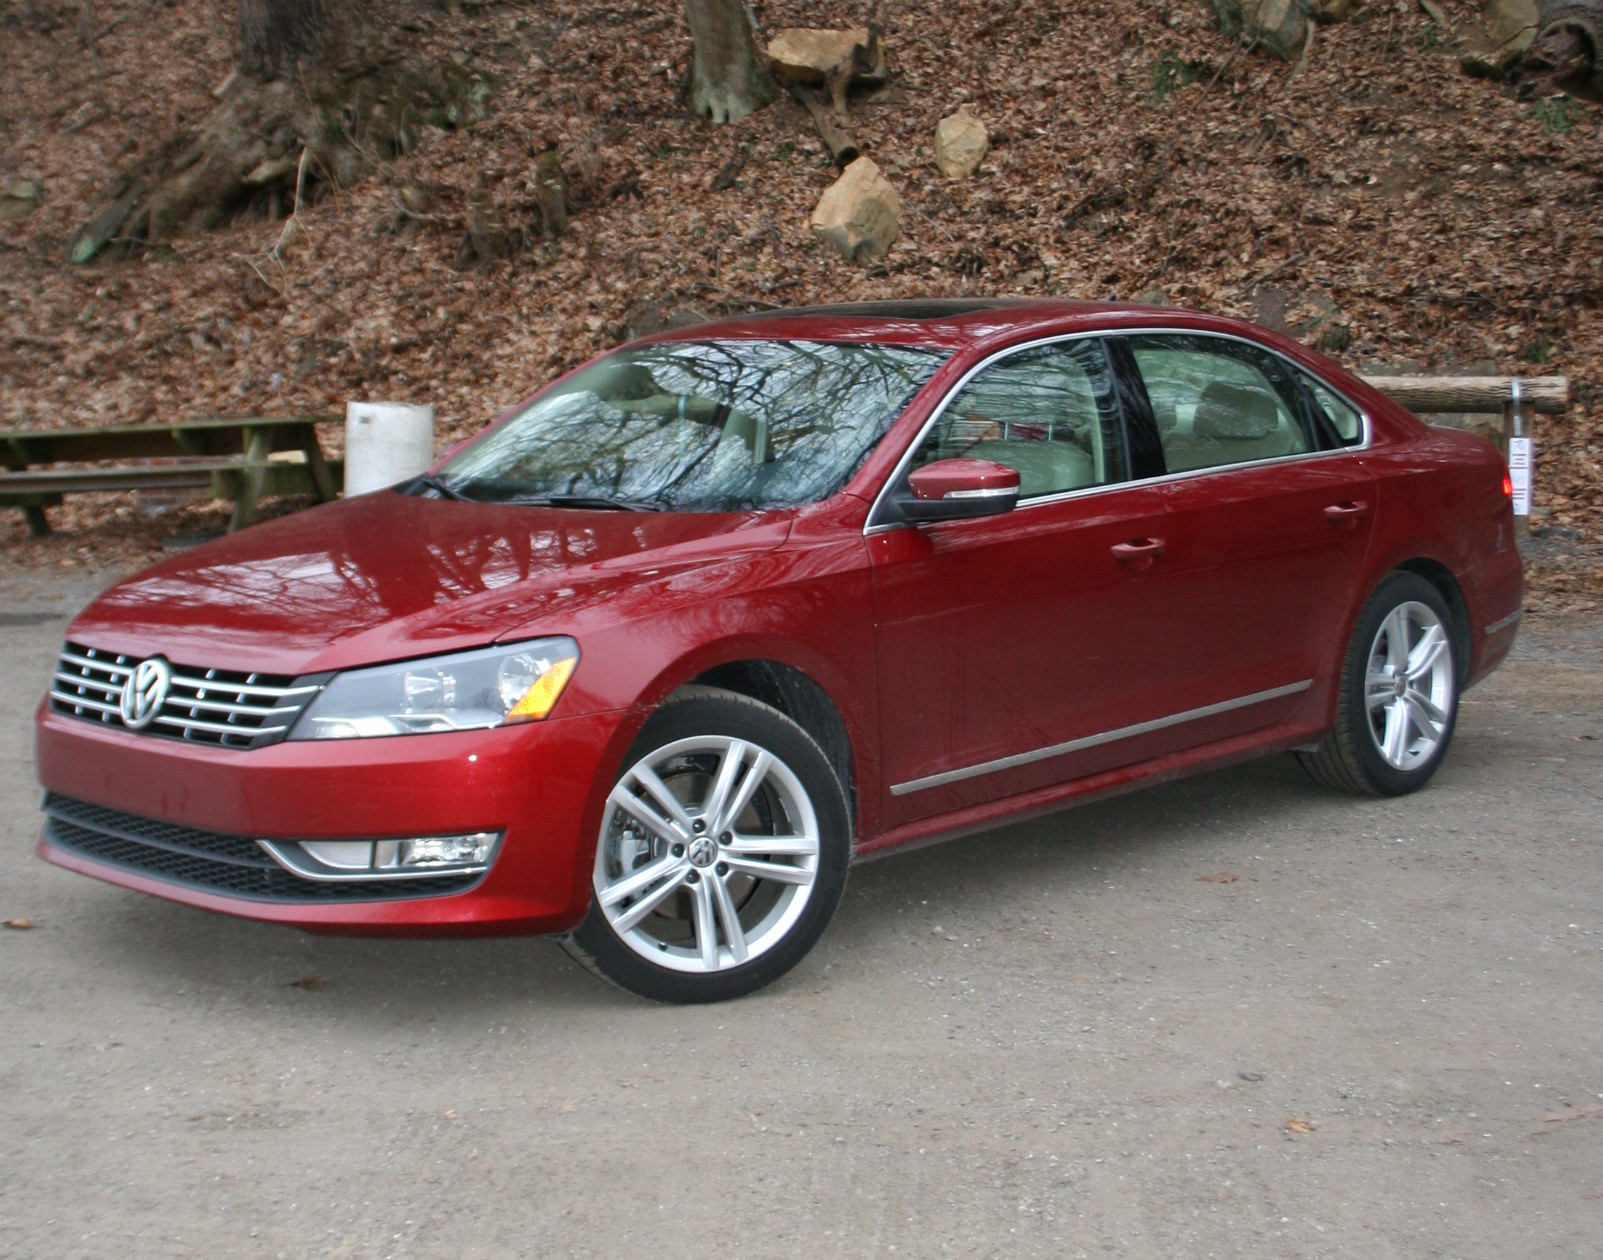 The 2015 VW Passat TDI: A large sedan with the fuel economy of a compact